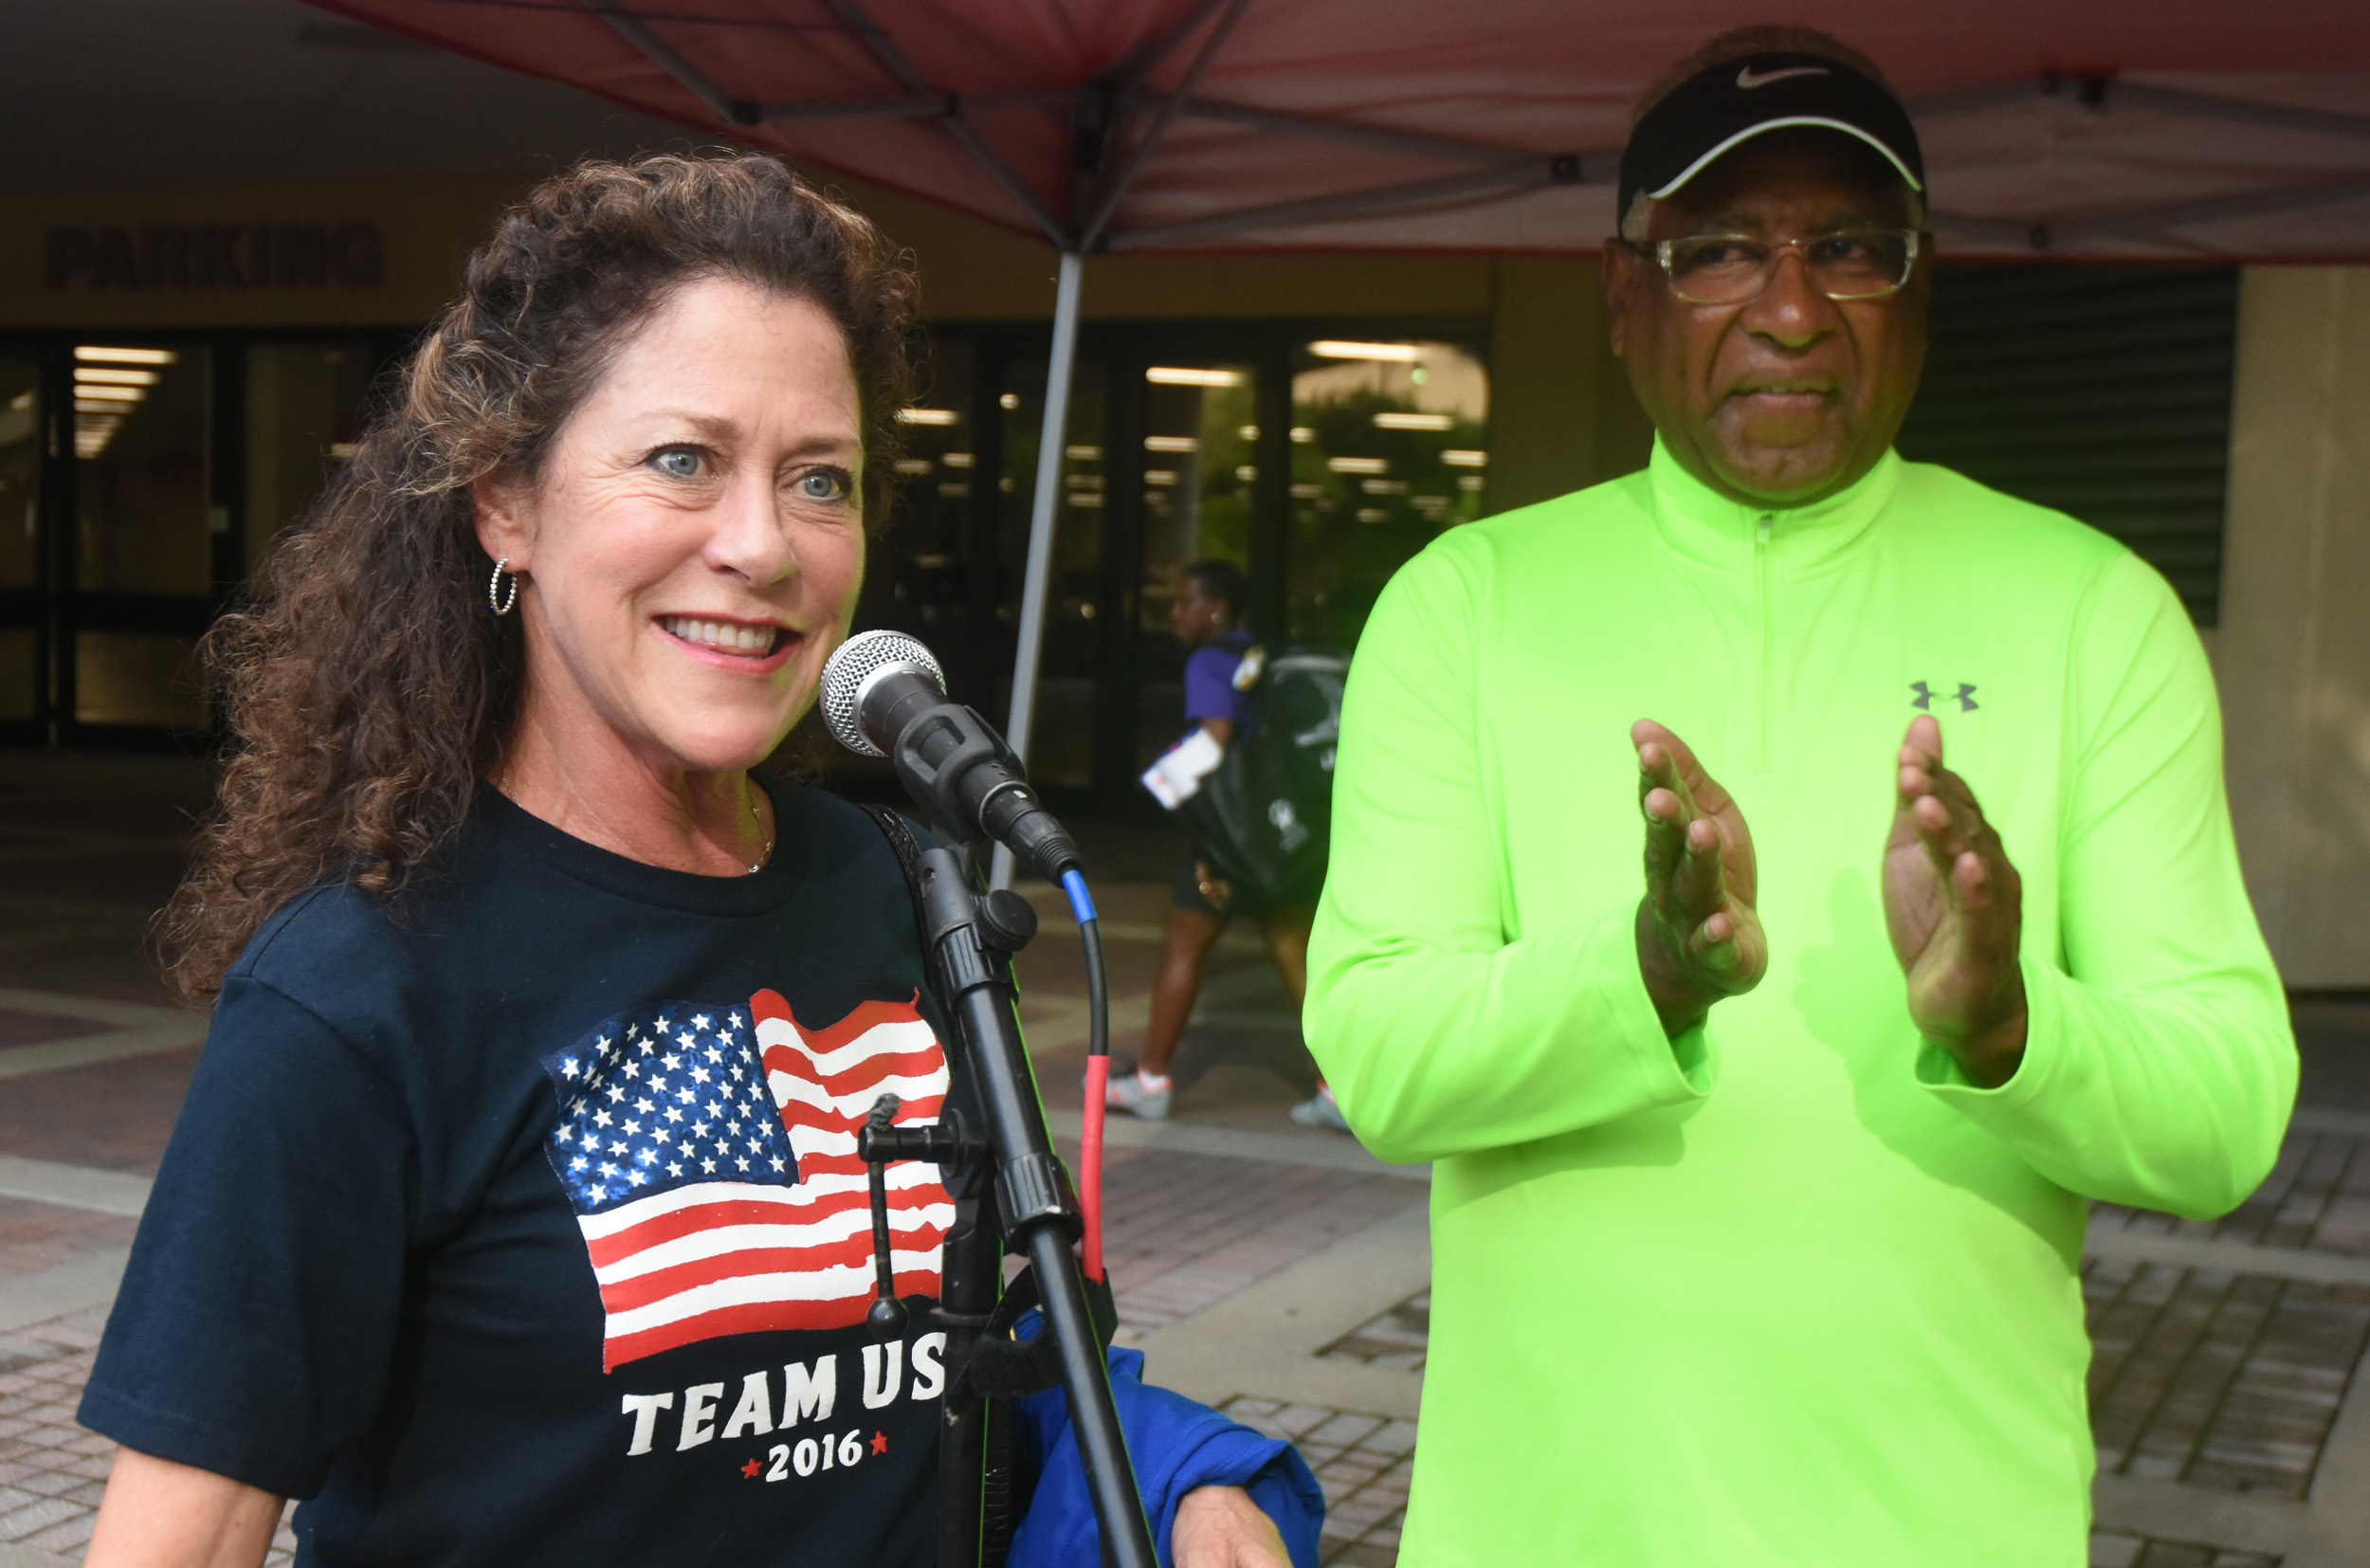 Jennifer Chandler Stevenson speaks at podium prior to the Mayor's Walk as Birmingham Mayor William Bell looks on. (Solomon Crenshaw Jr. photo)